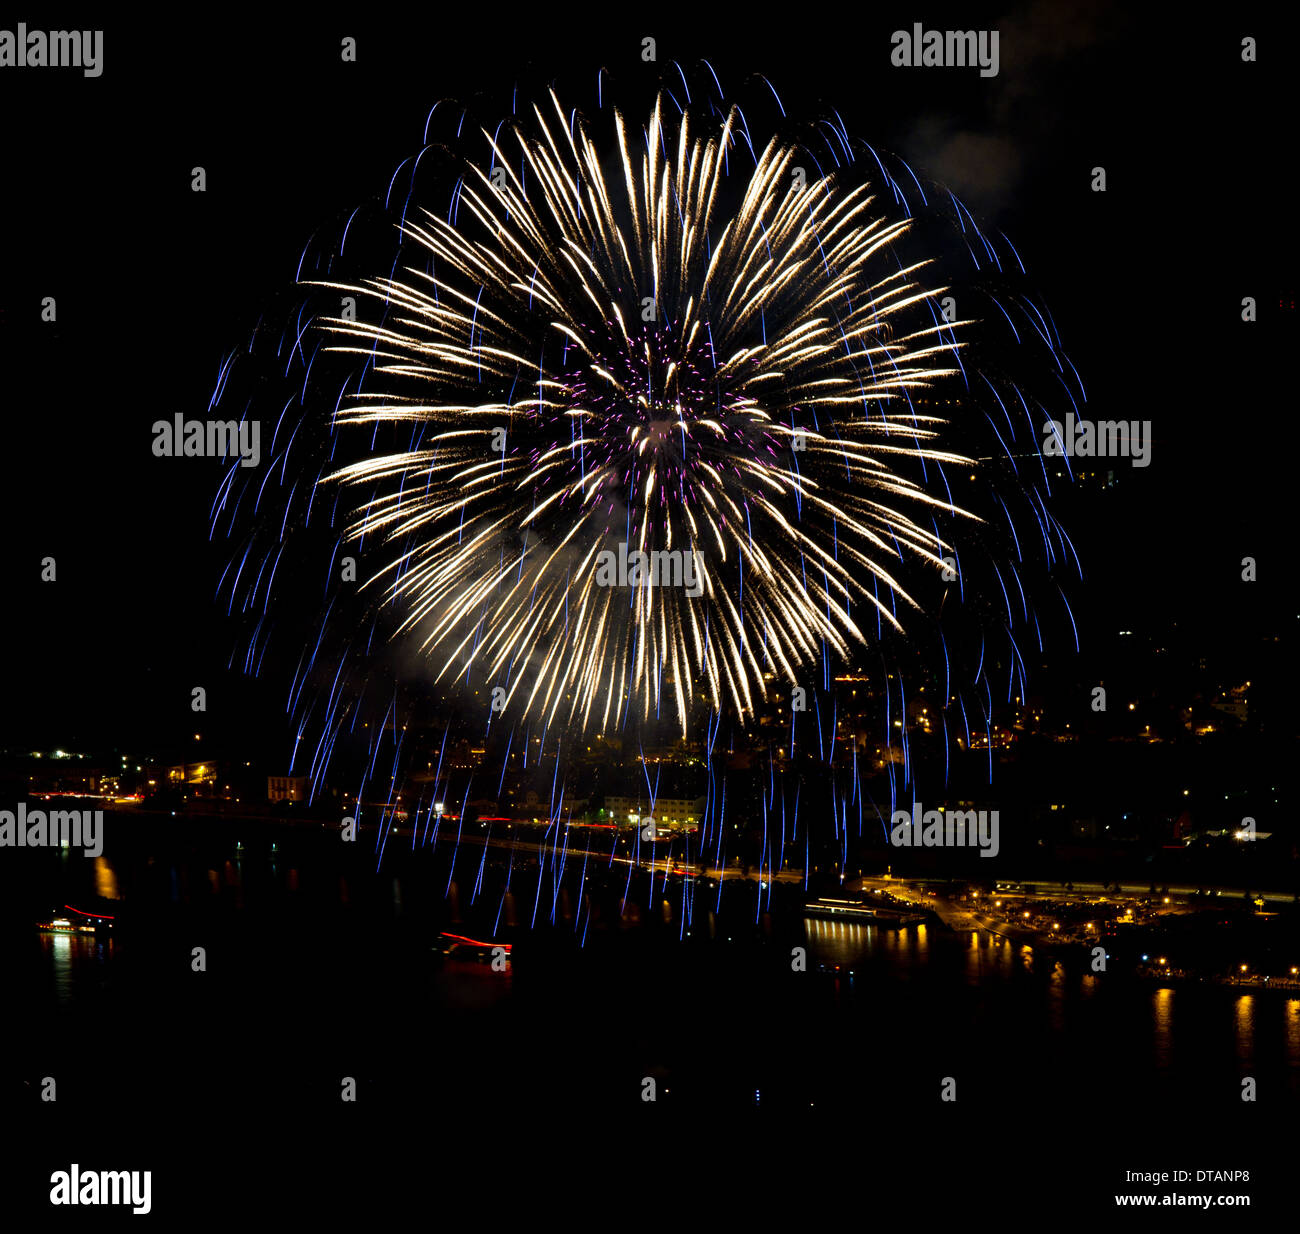 Fireworks over the Rhine river with illuminated boats - Stock Image